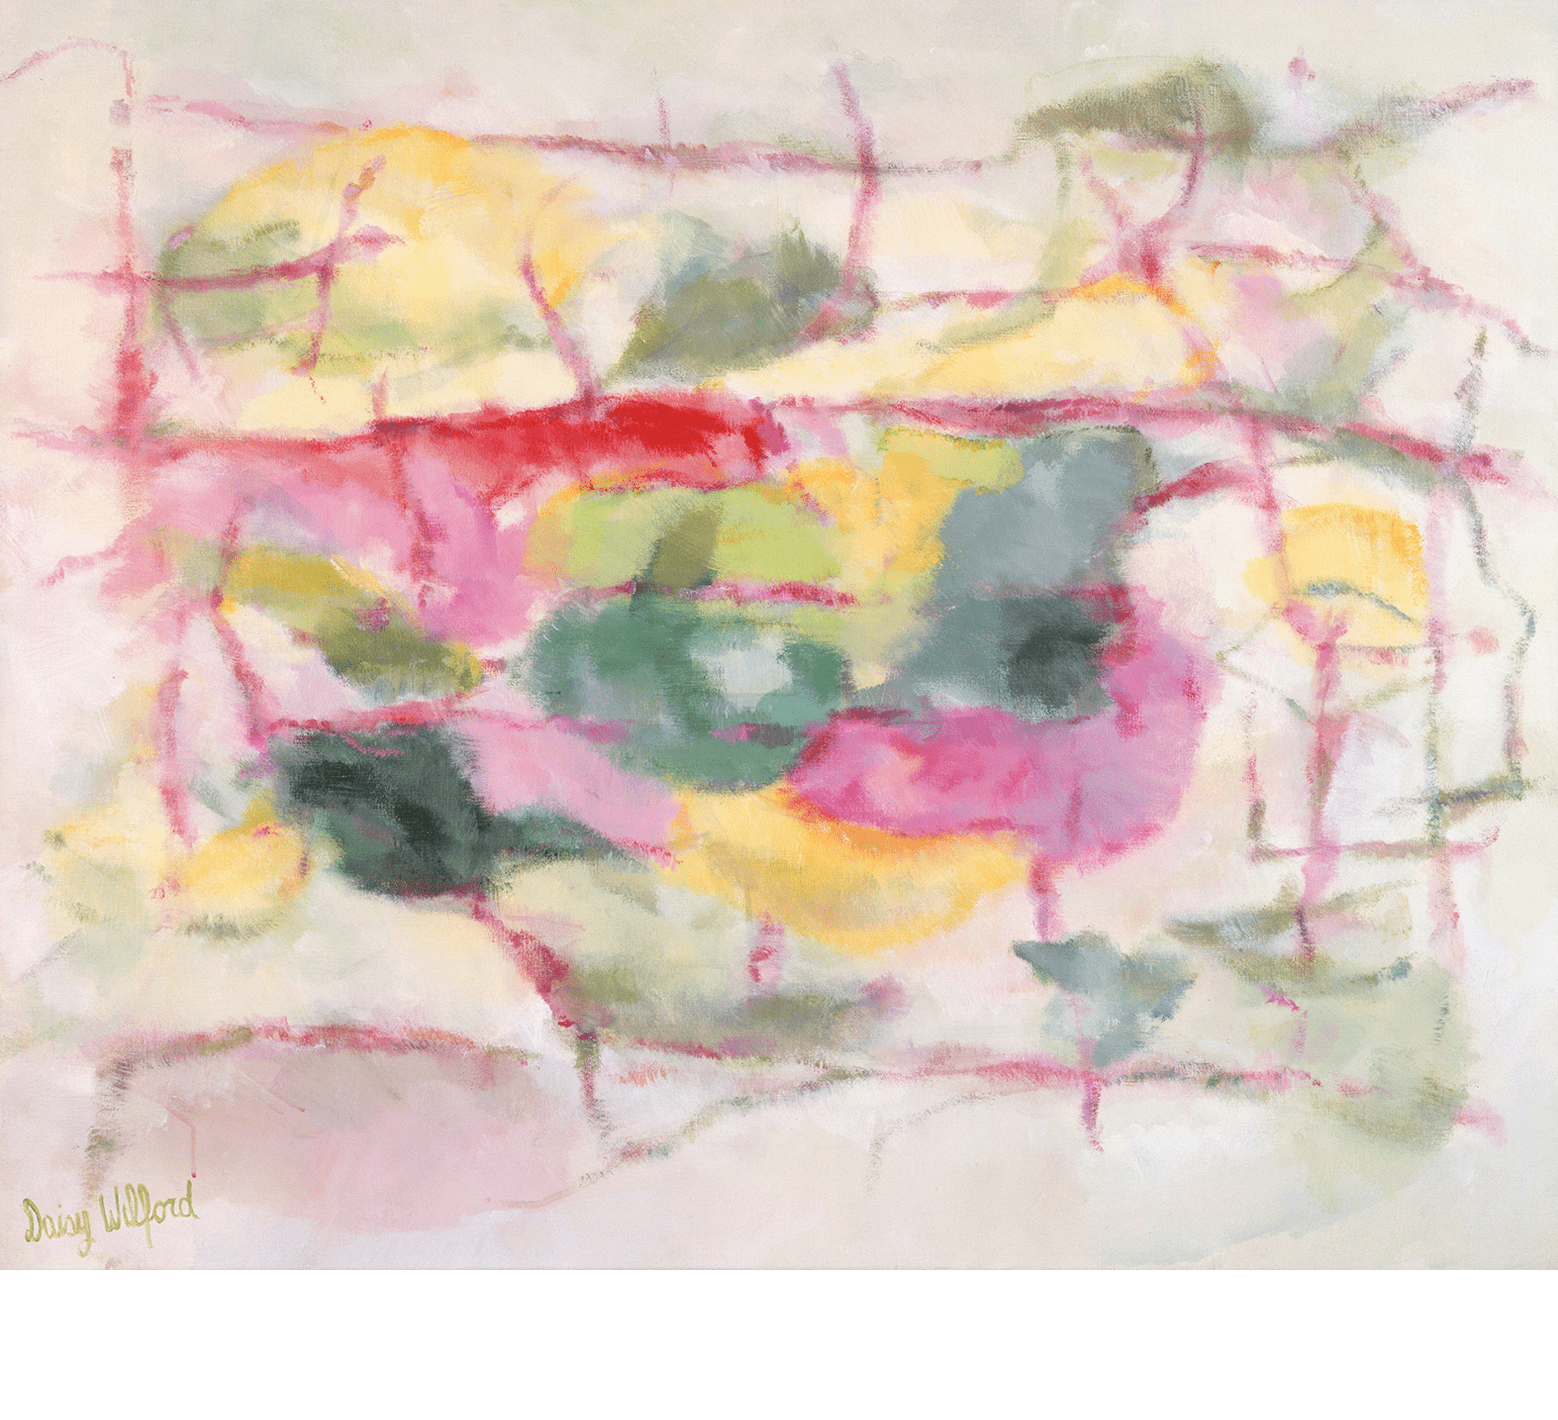 Abstraction (1986-1987)